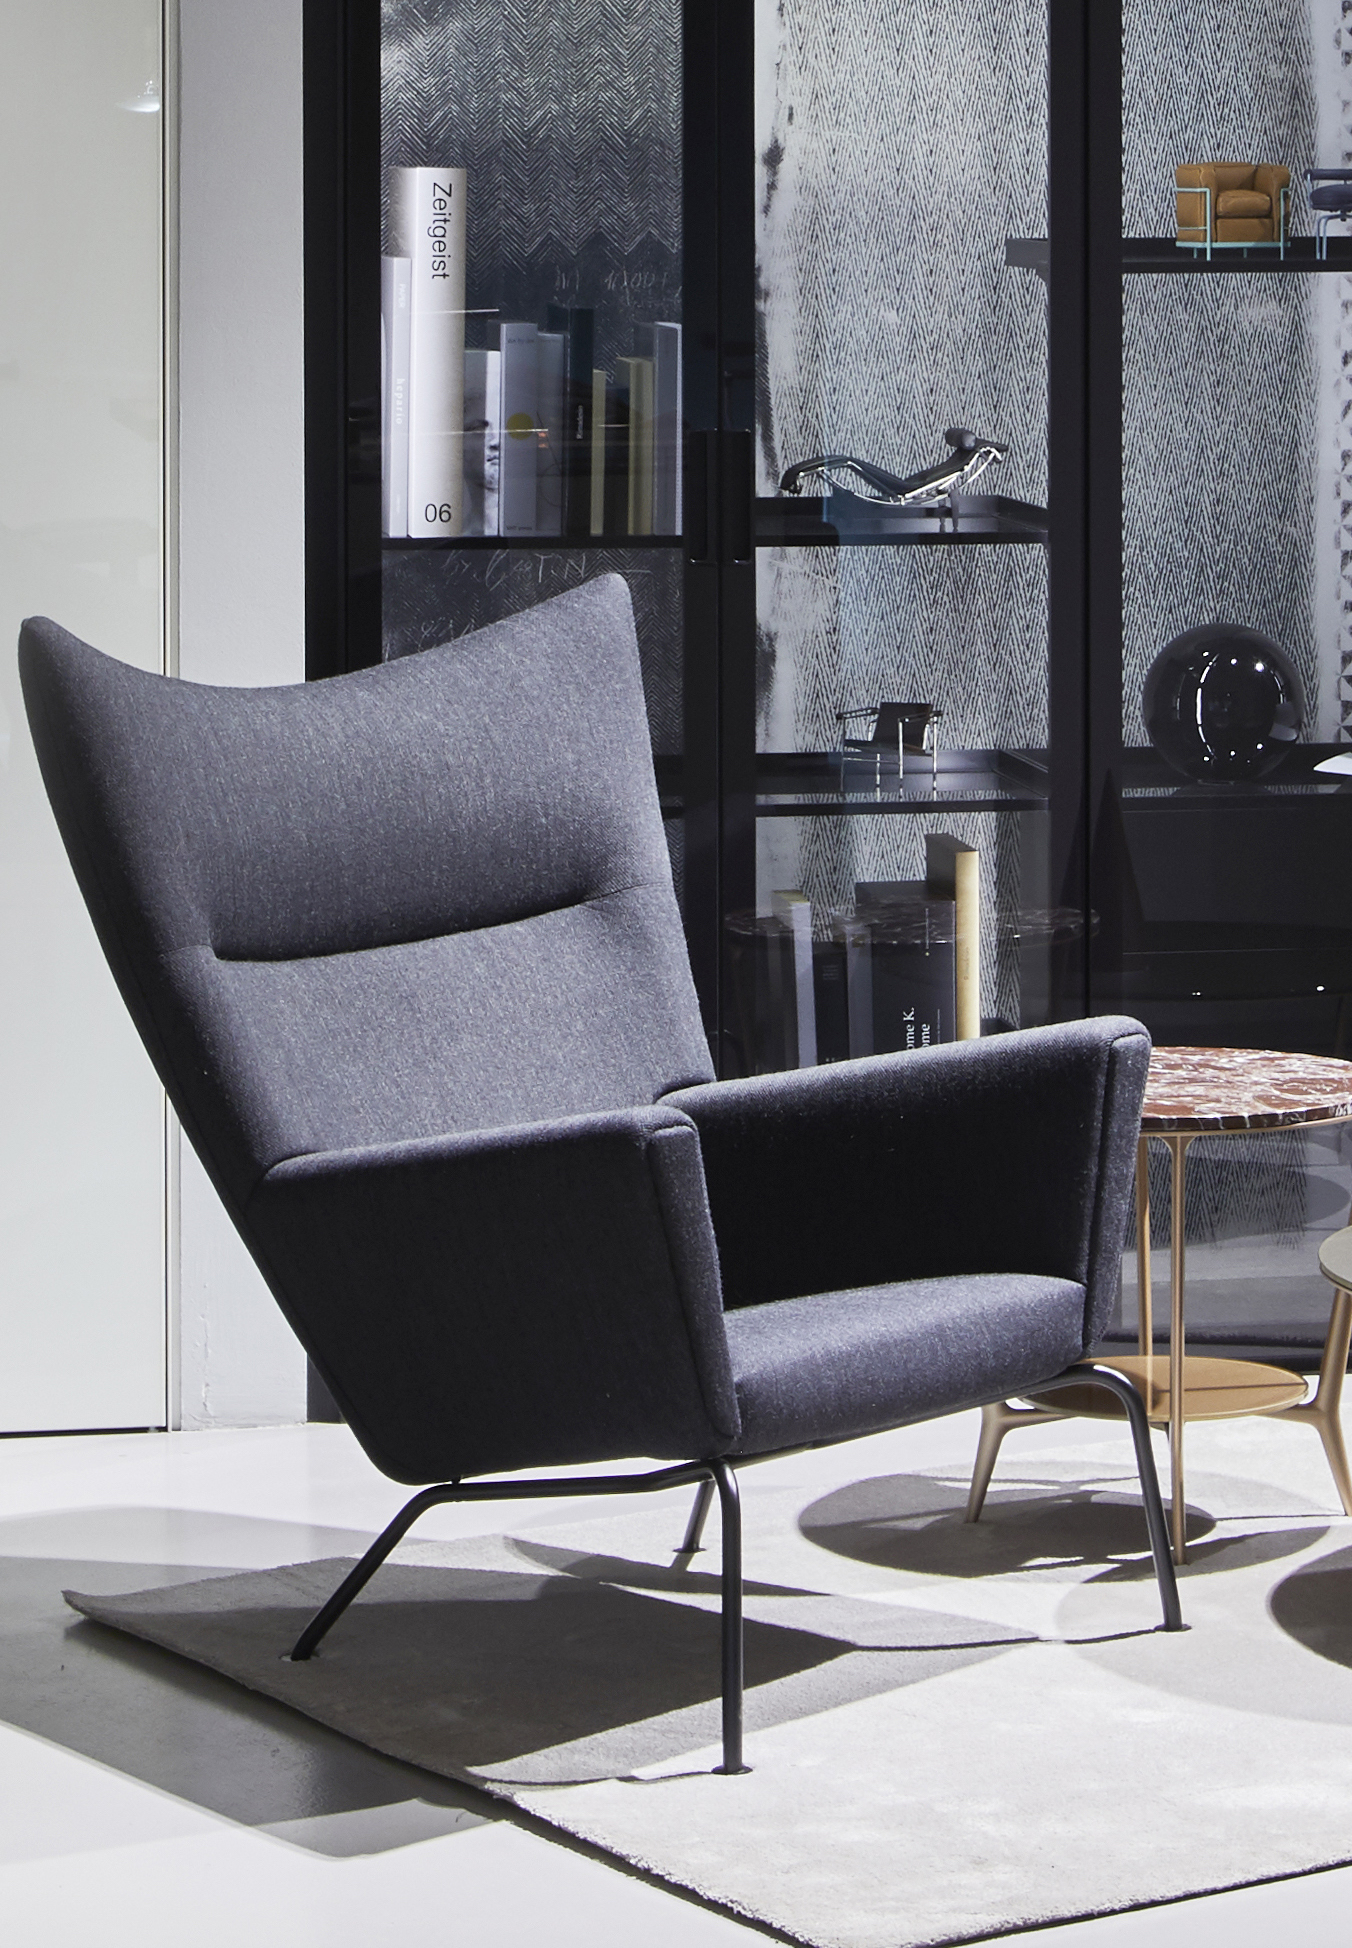 CH445 WING CHAIR – POLTRONA